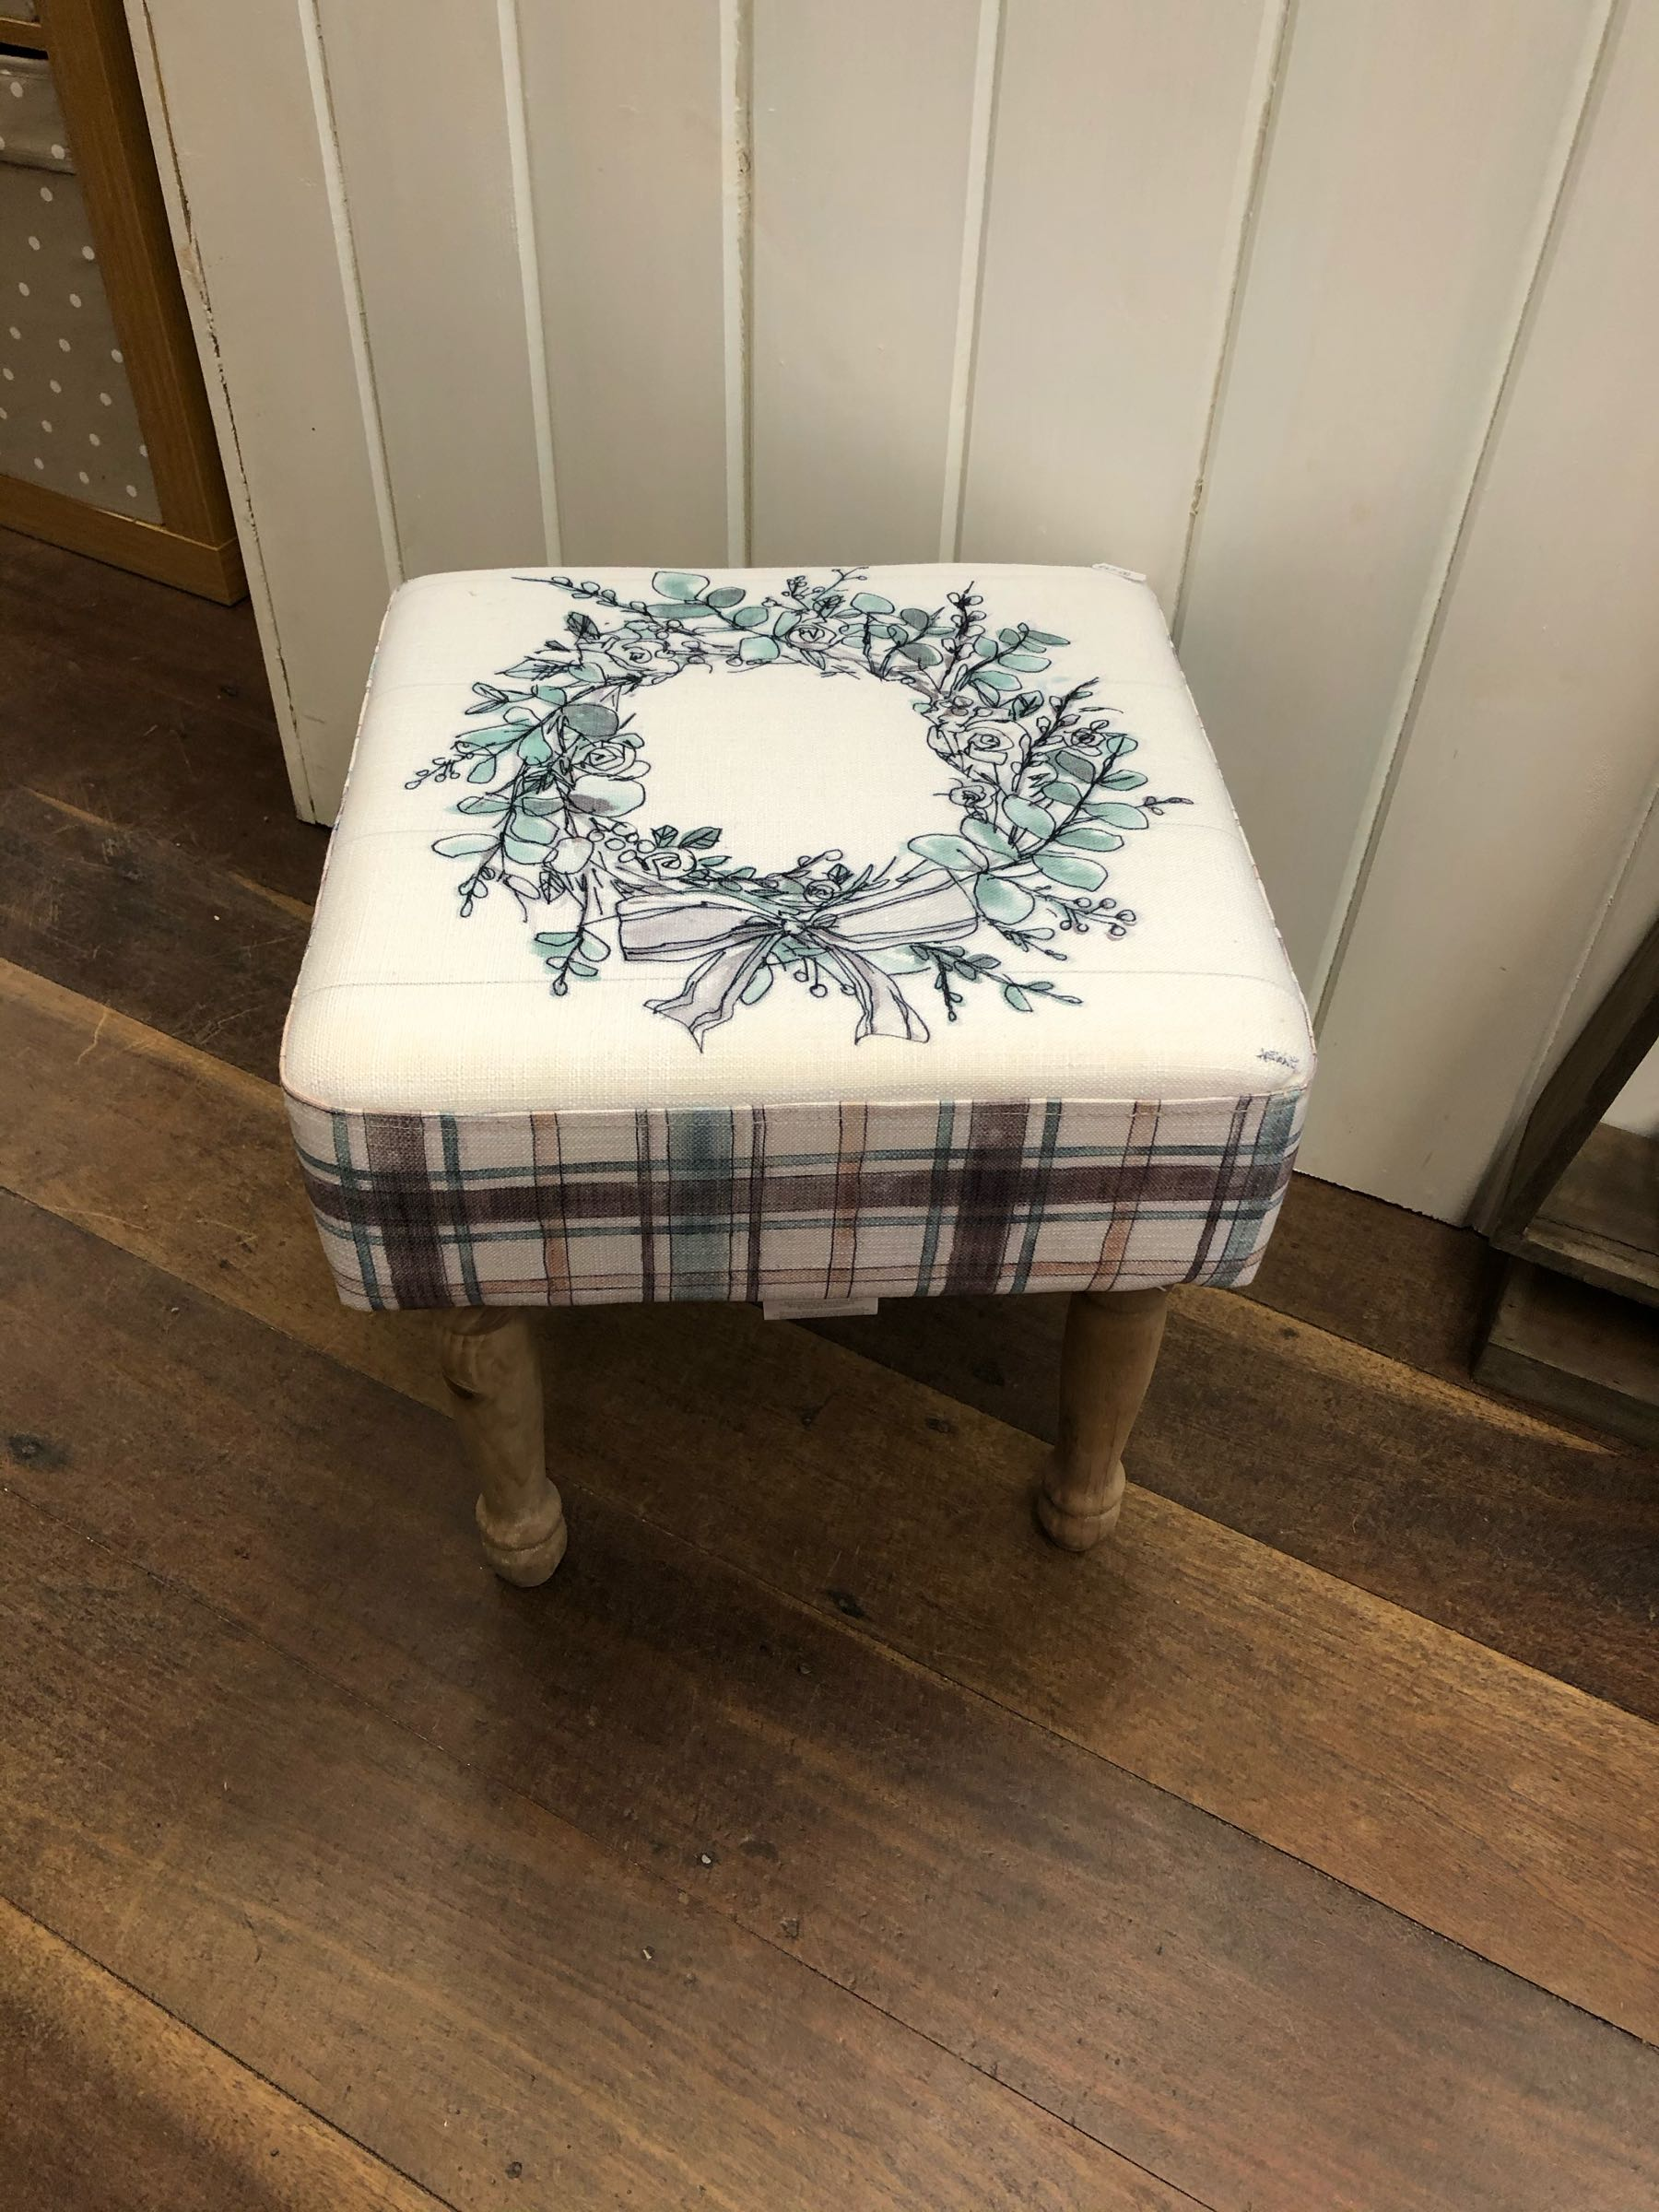 Wreath wooden upholstered stool